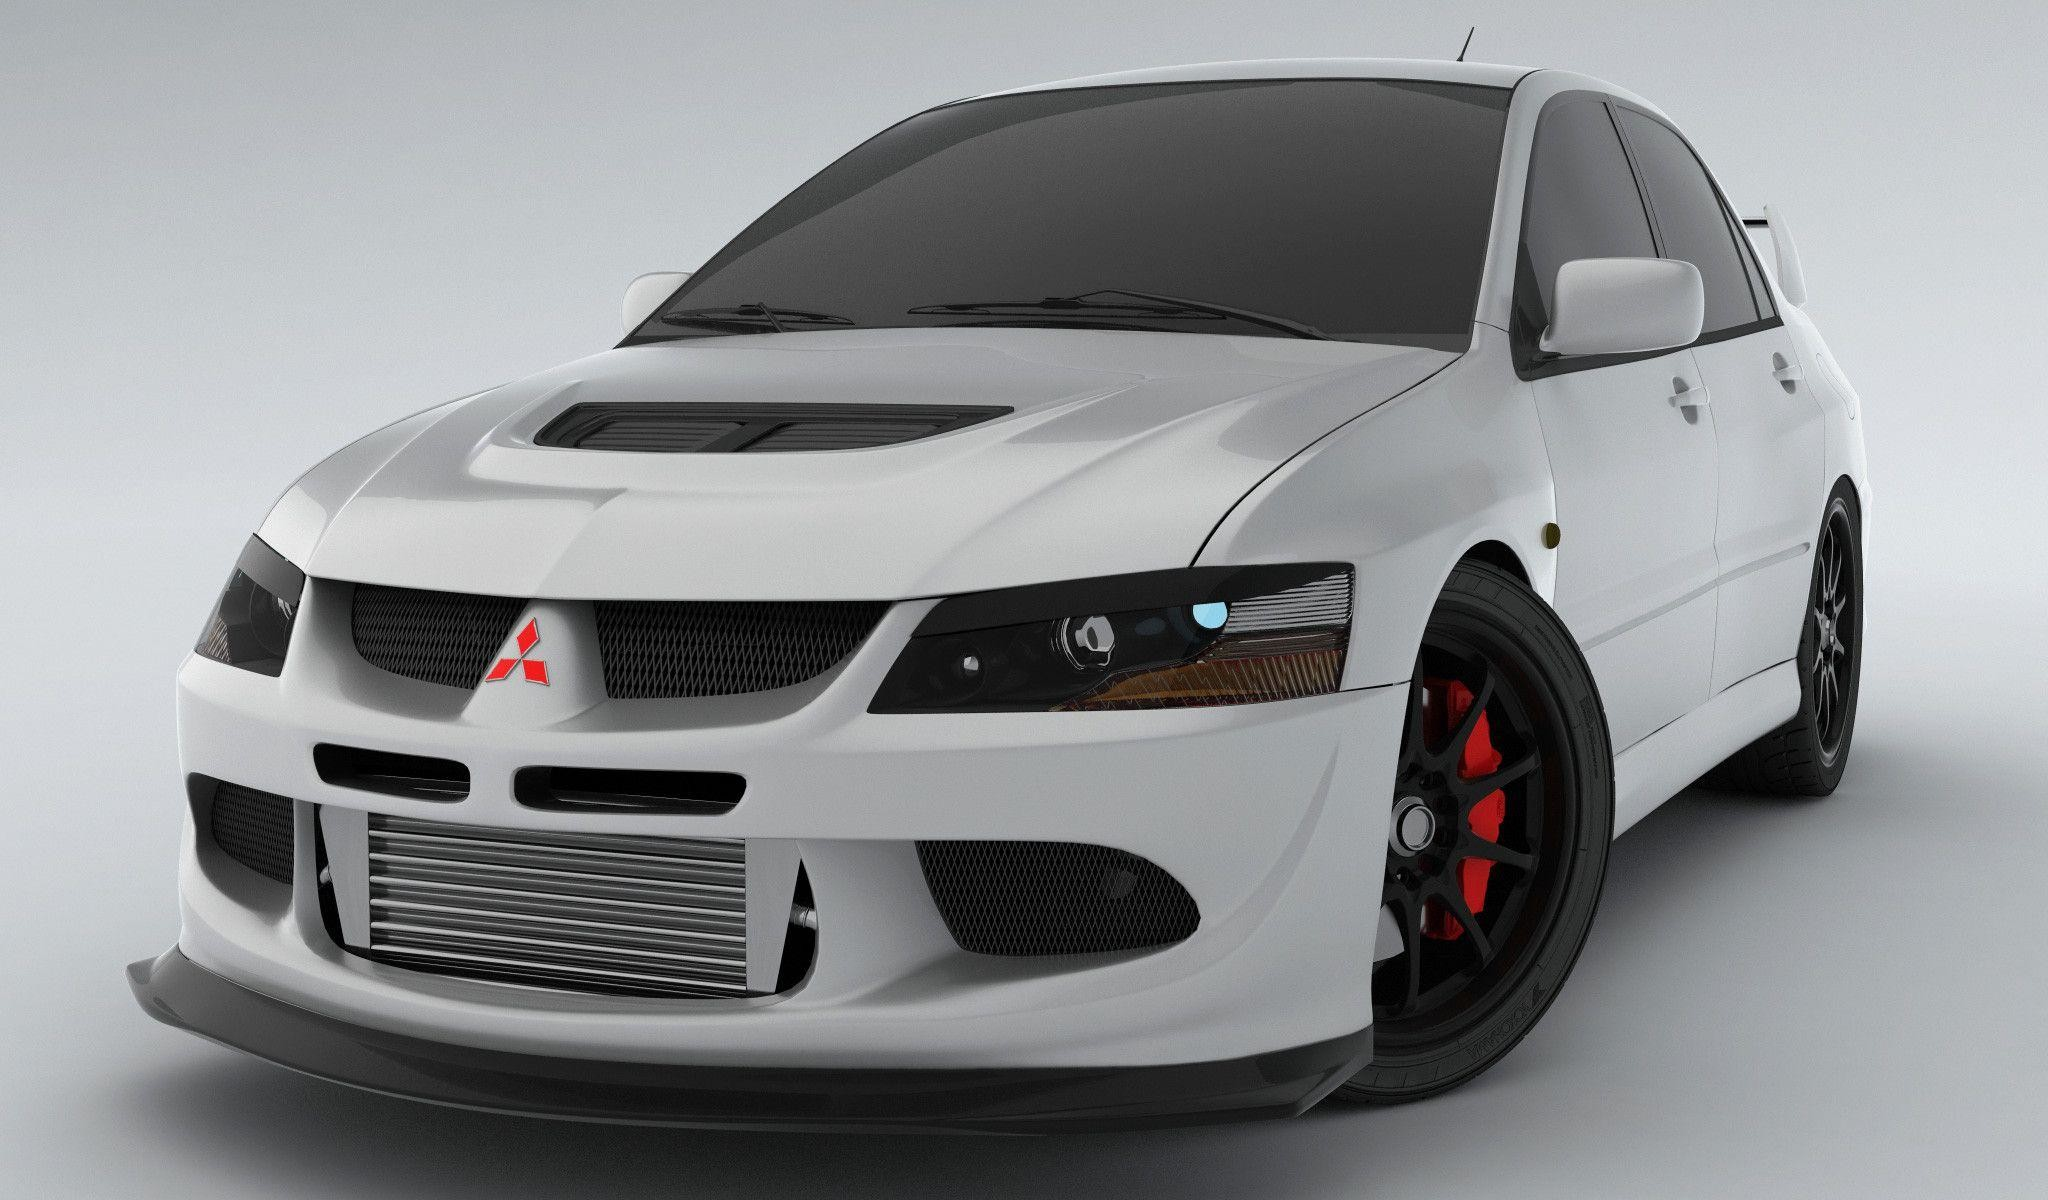 lancer evo viii render 2 by pixelroom on deviantart